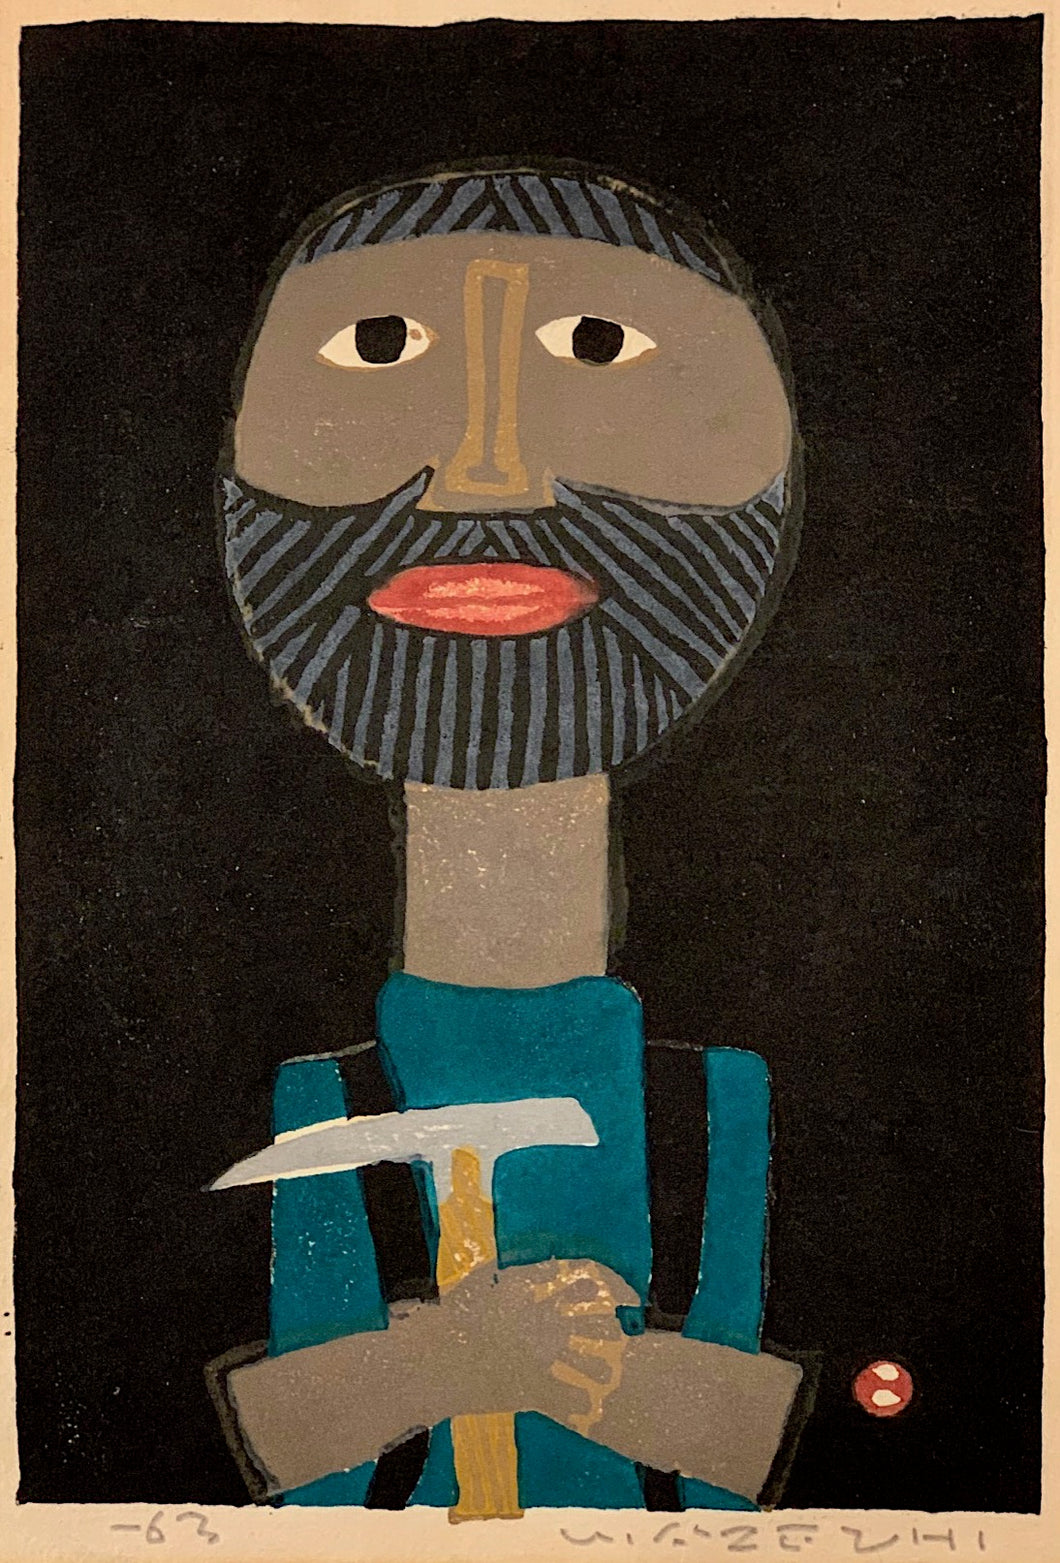 'Mountaineer With Climbing Axe' by Umetaro Azechi